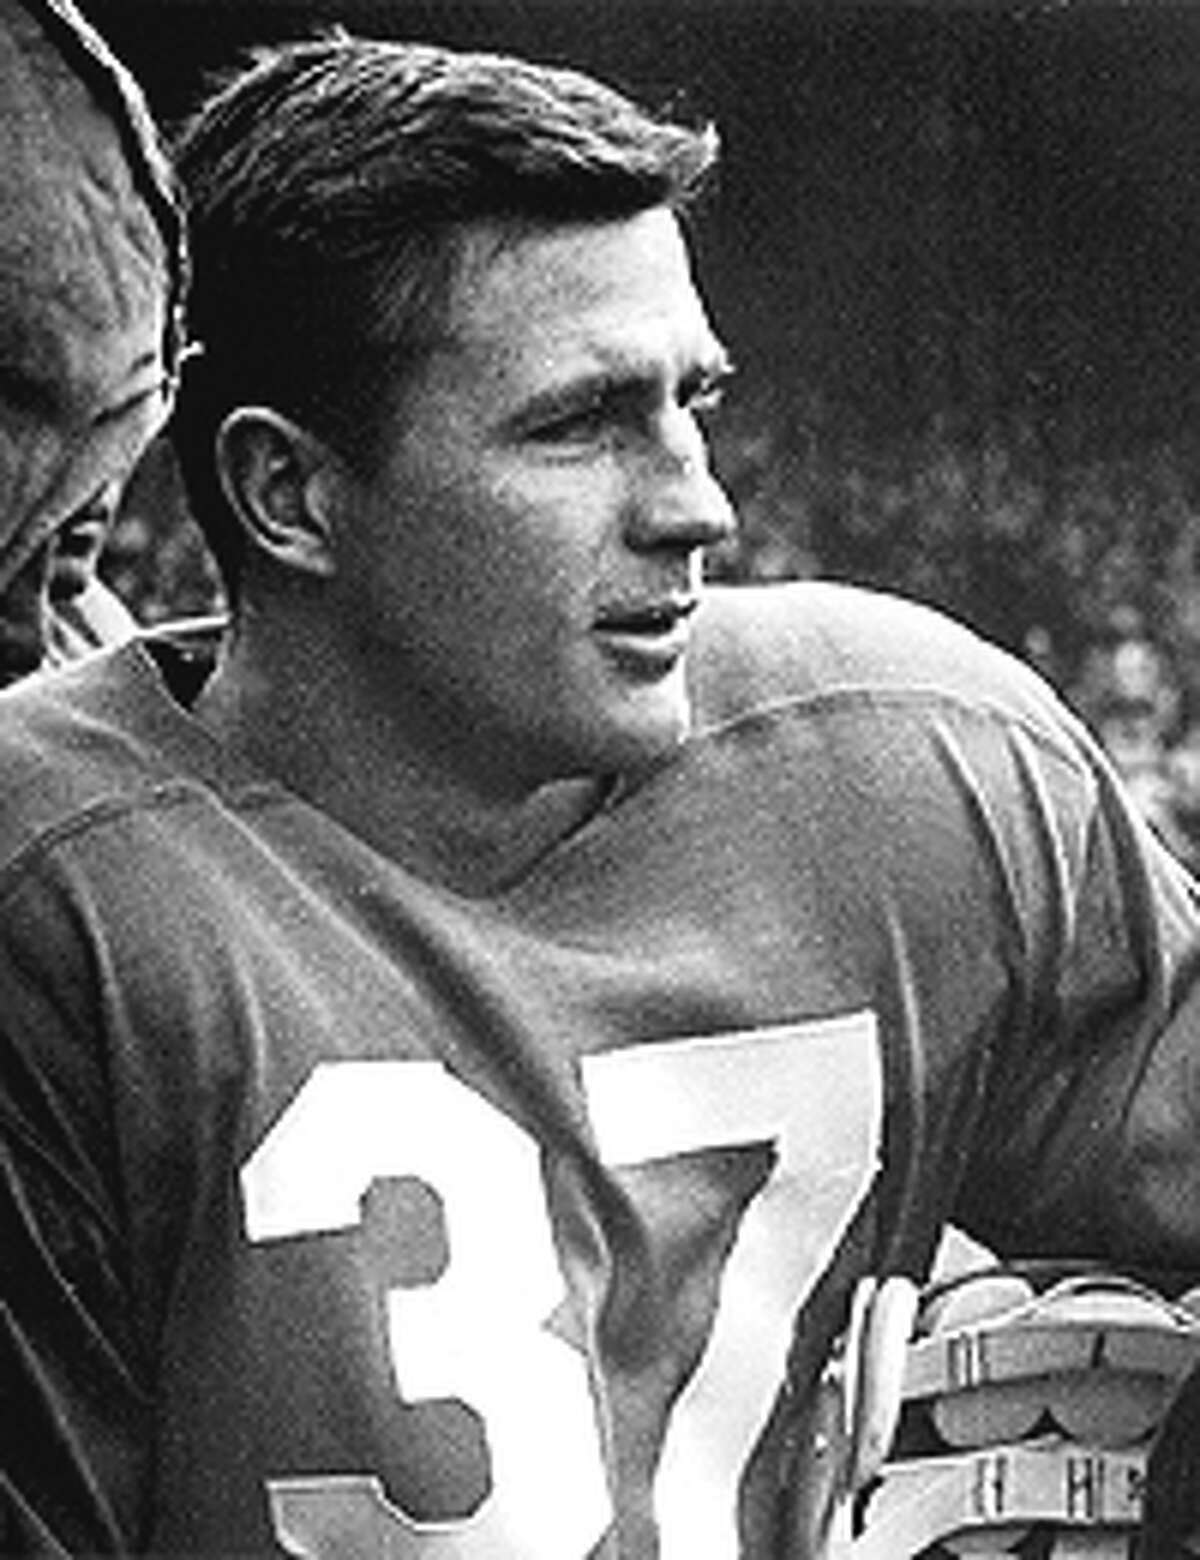 Doak Walker, SMU football player. After winning the Heisman, Walker ran for a touchdown, booted a 79-yard punt and was named Cotton Bowl MVP for the second consecutive year while leading his SMU Mustangs to a 21-13 victory over Oregon. Source: attcottonbowl.com